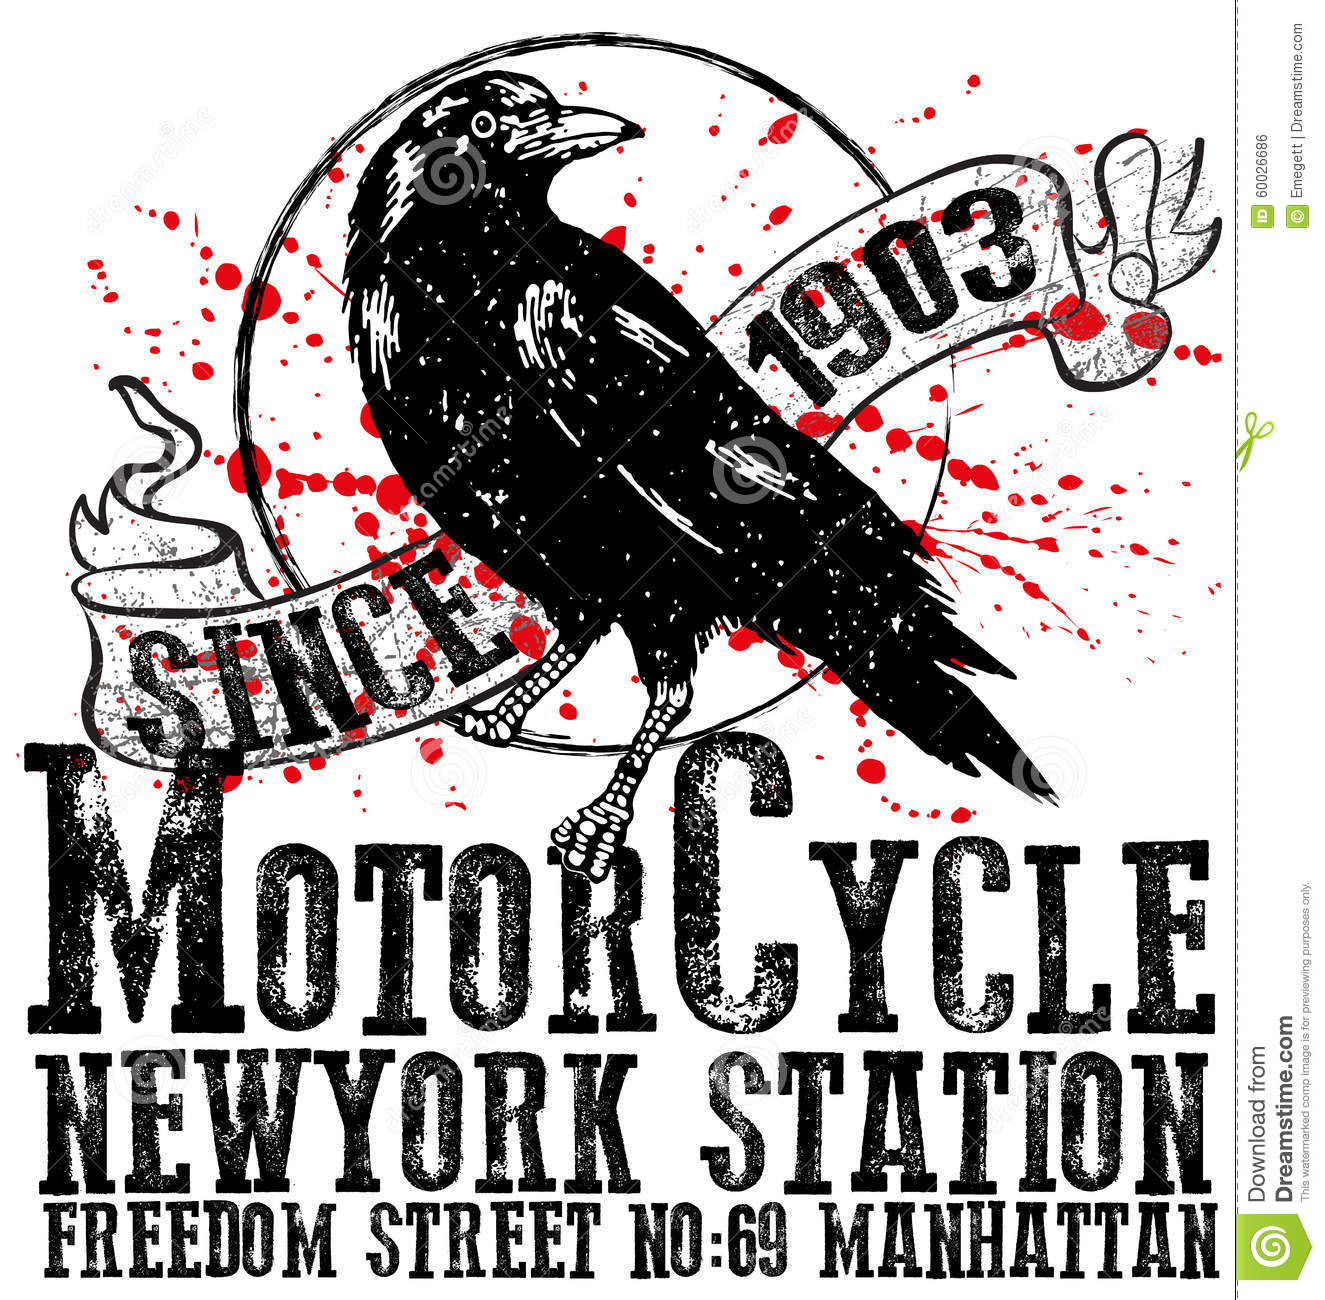 Vintage Motorcycle Club Logo Graphic Design For Man T